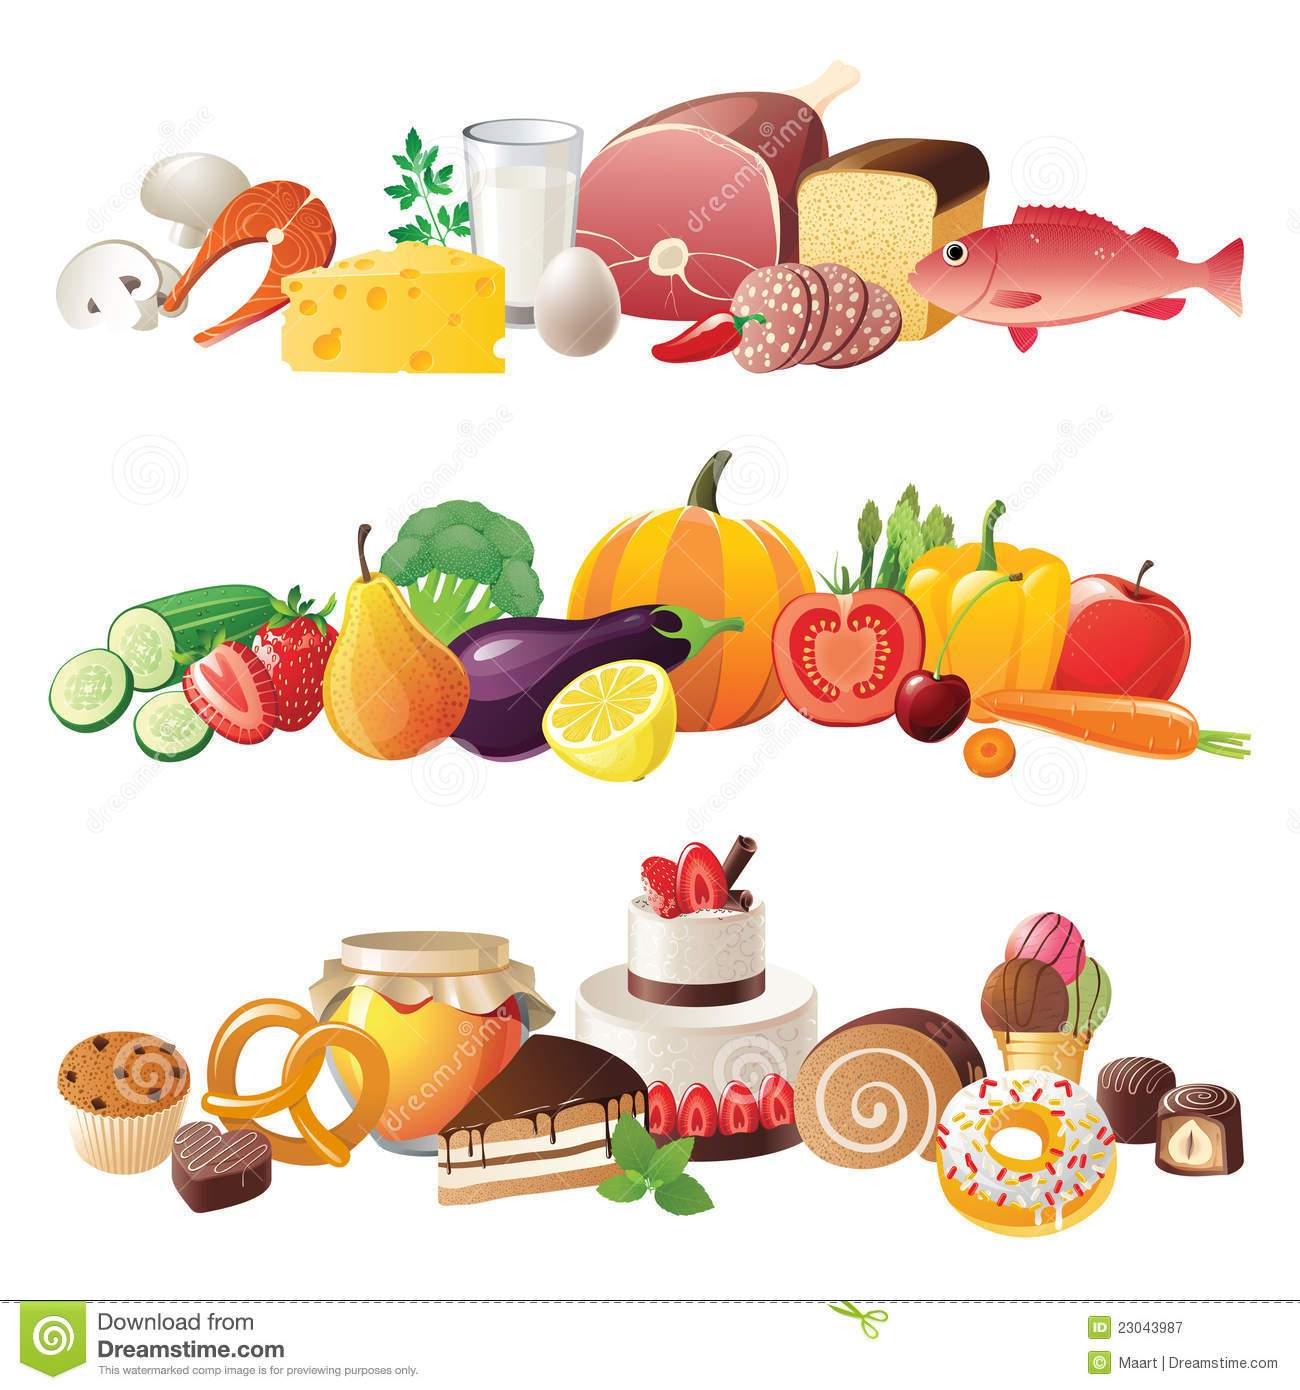 Free pictures of food clipart. Images portal